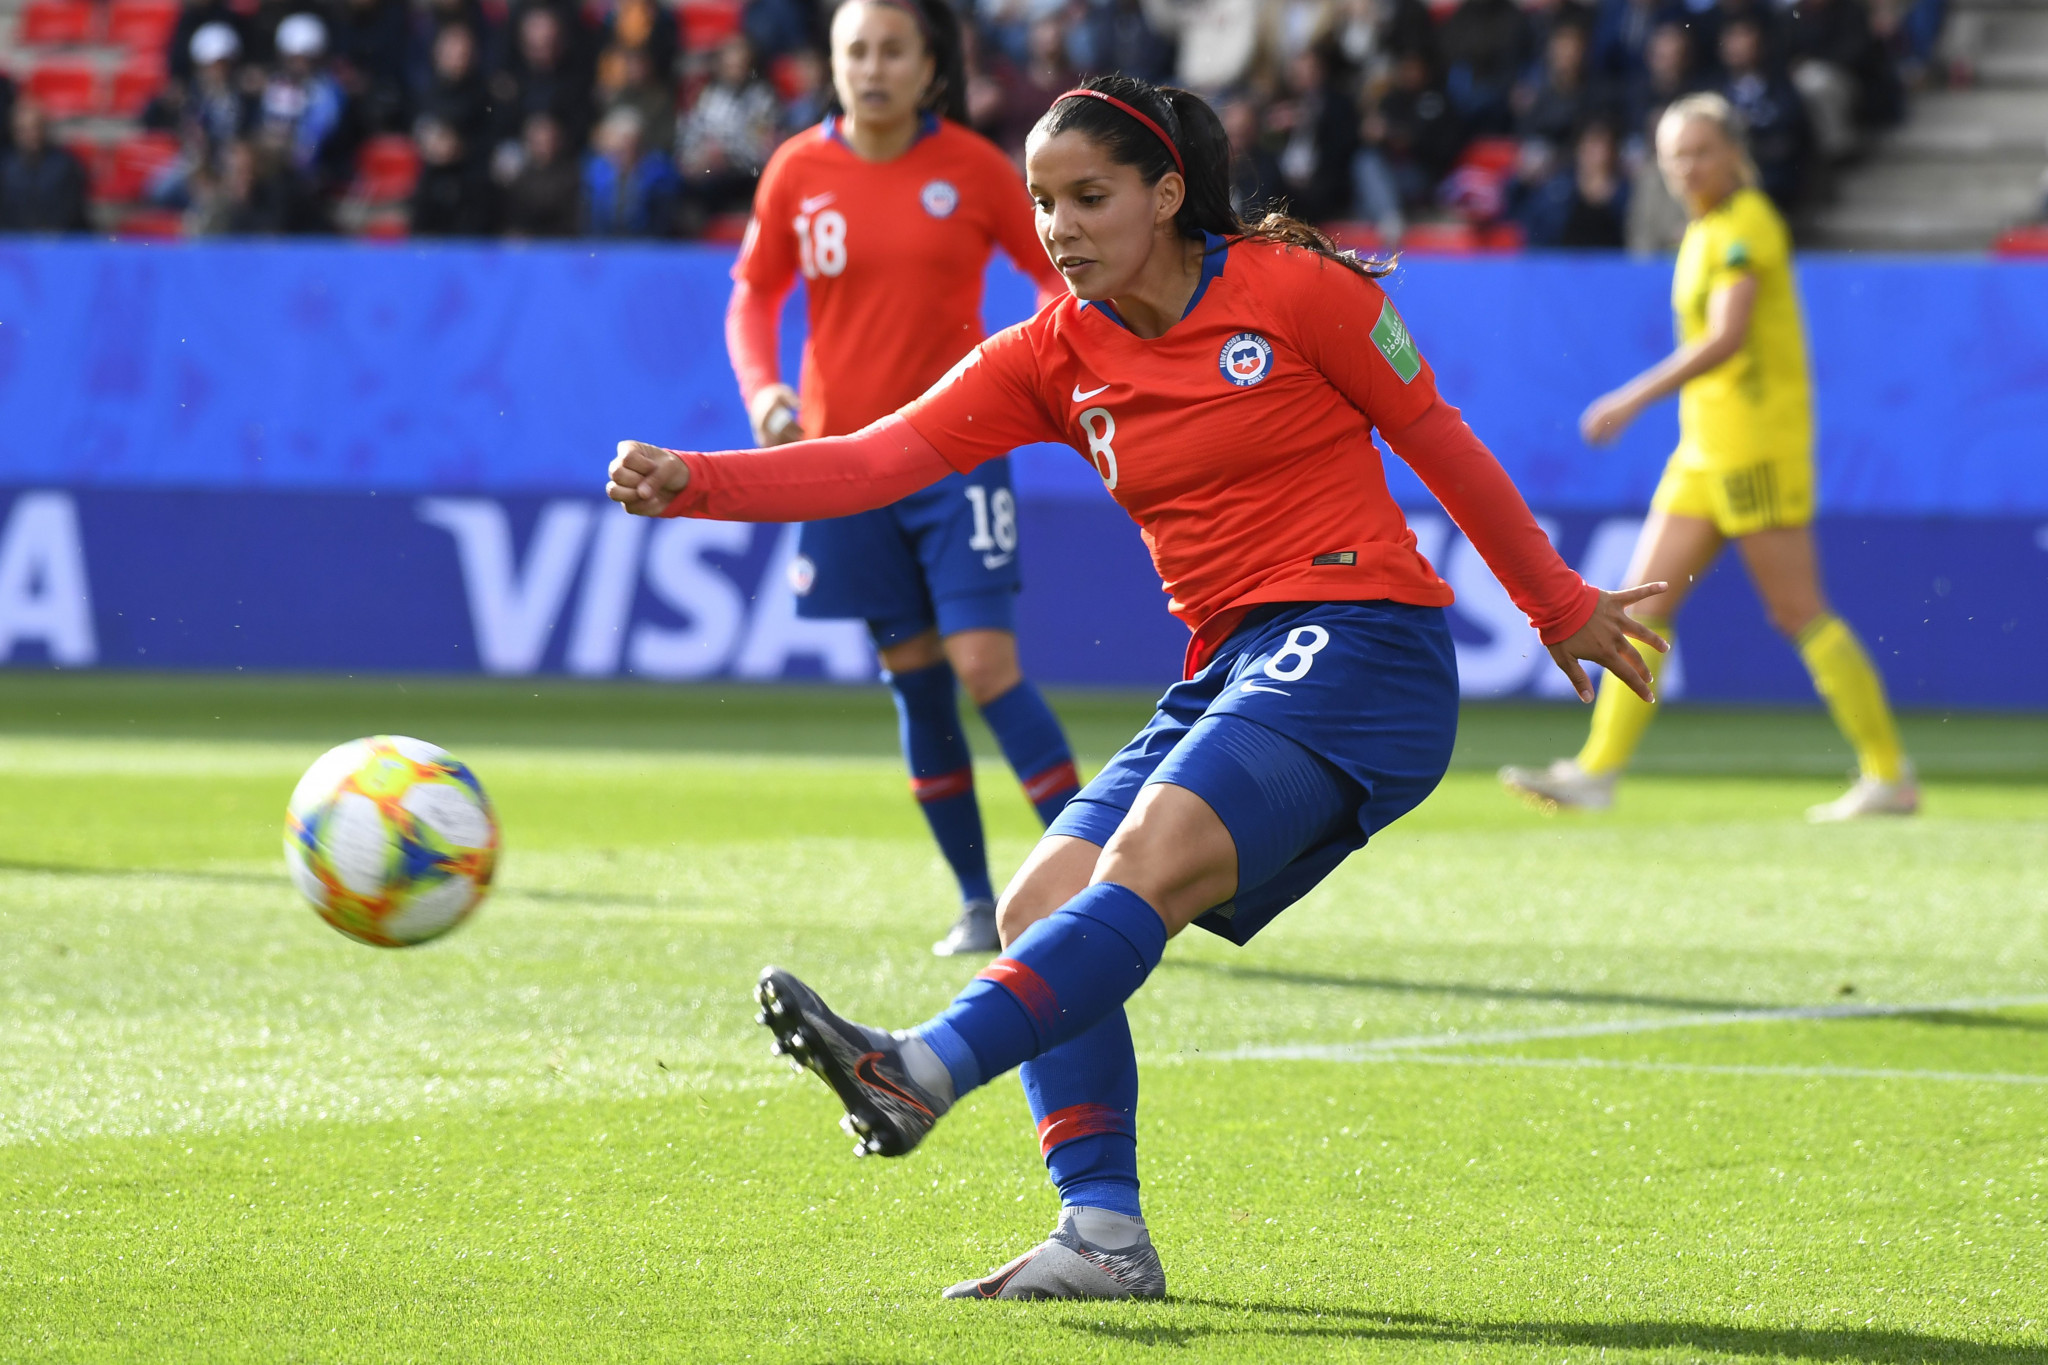 Women's Olympic football playoff between Cameroon and Chile pushed back to April